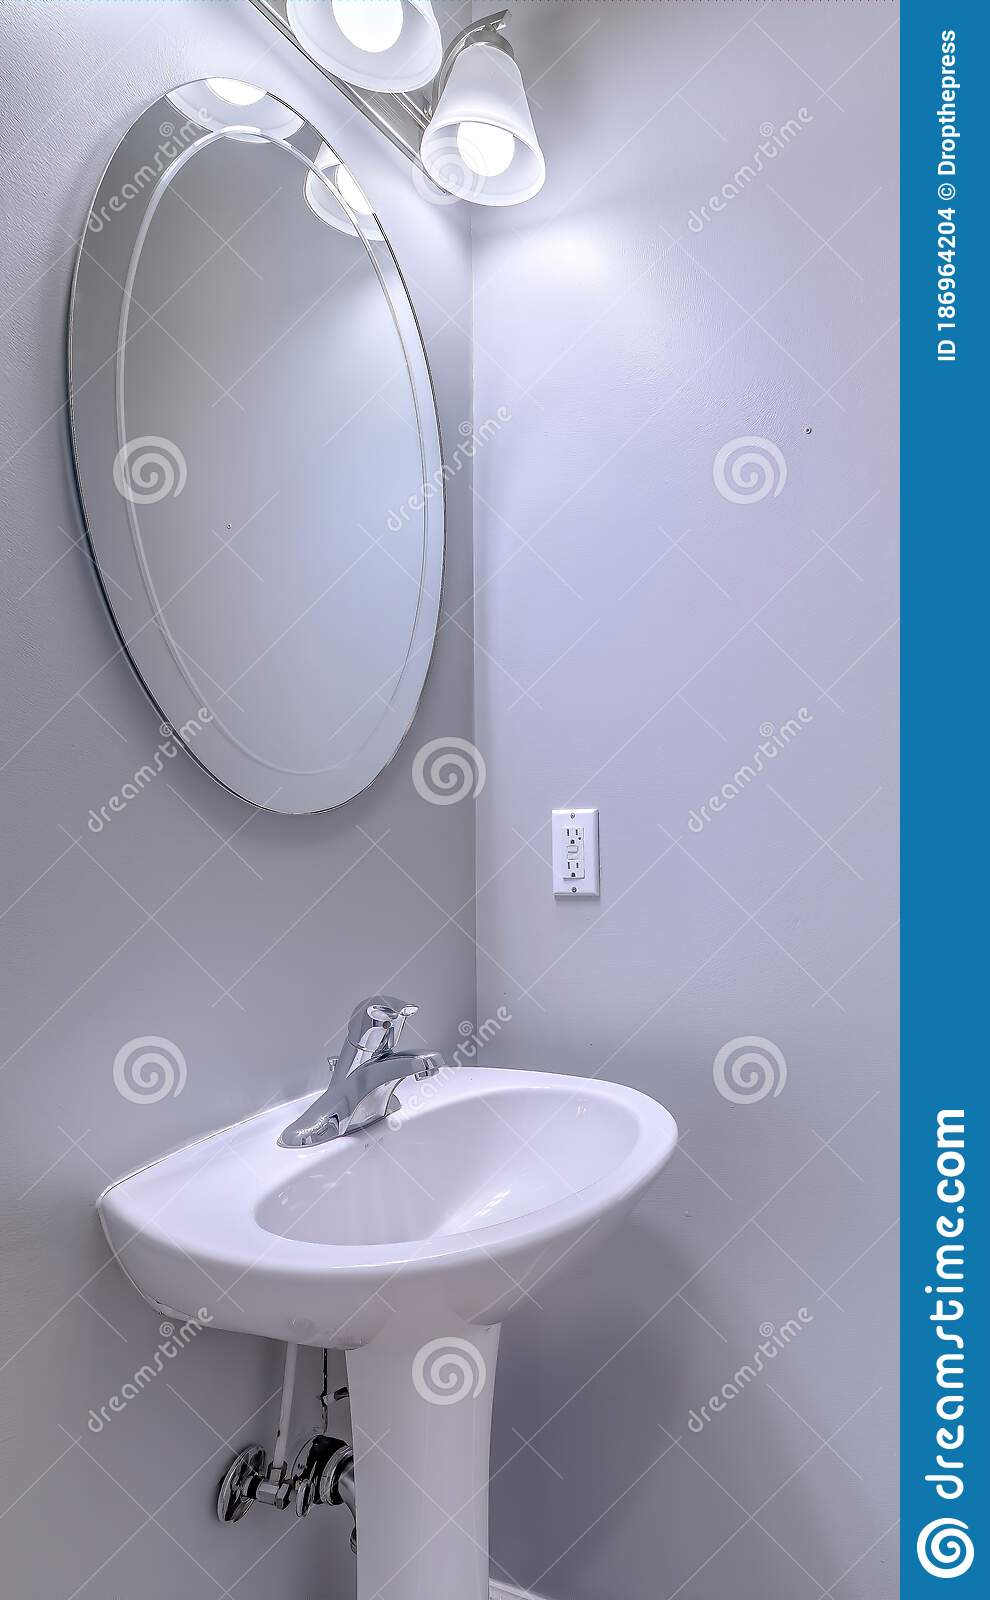 436 Oval Mirror Bathroom Photos Free Royalty Free Stock Photos From Dreamstime